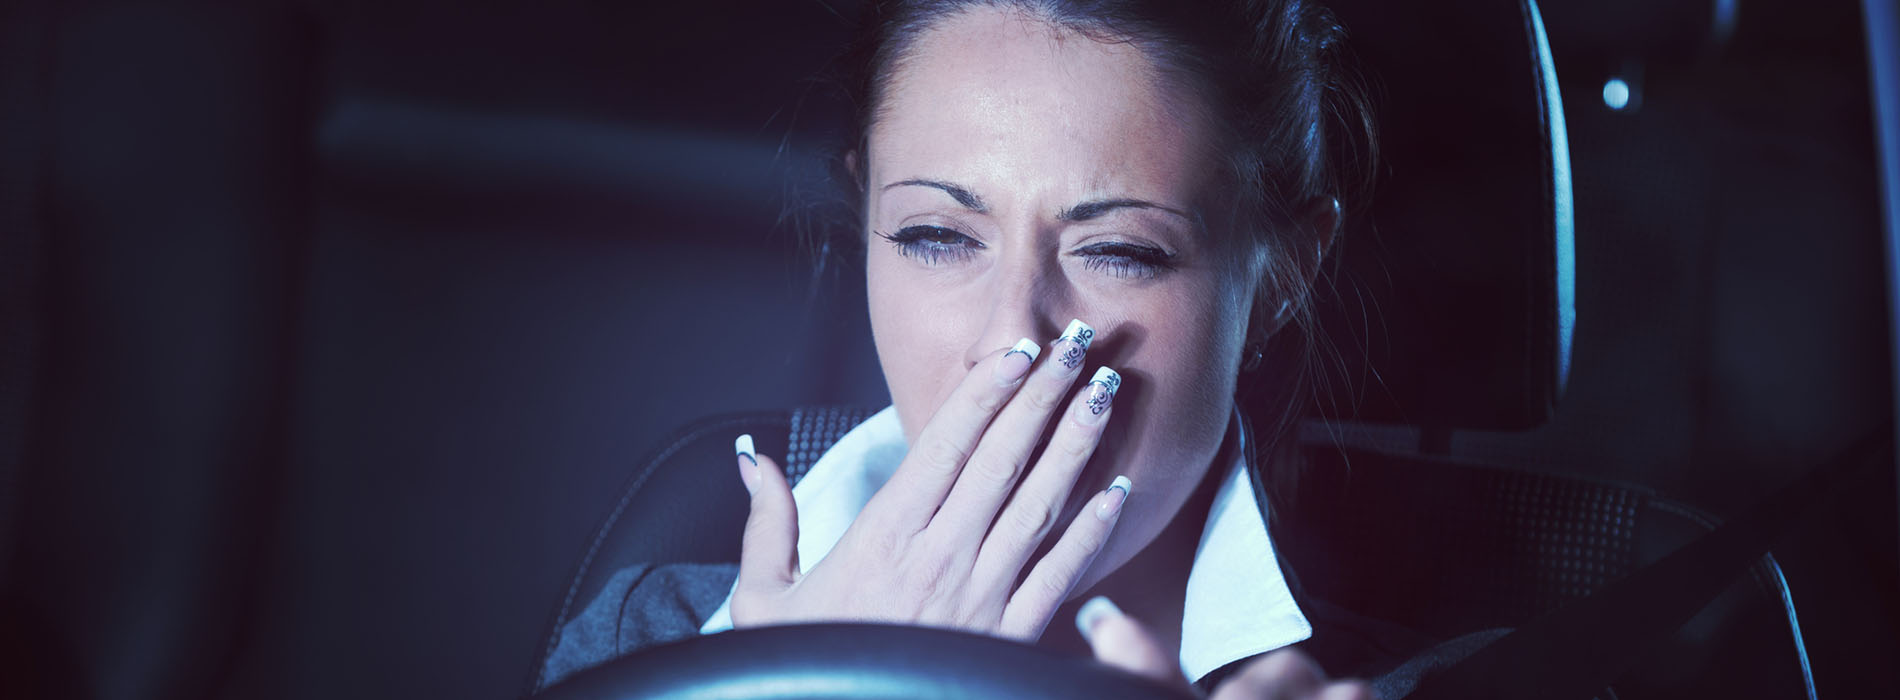 Woman yawning while driving her car